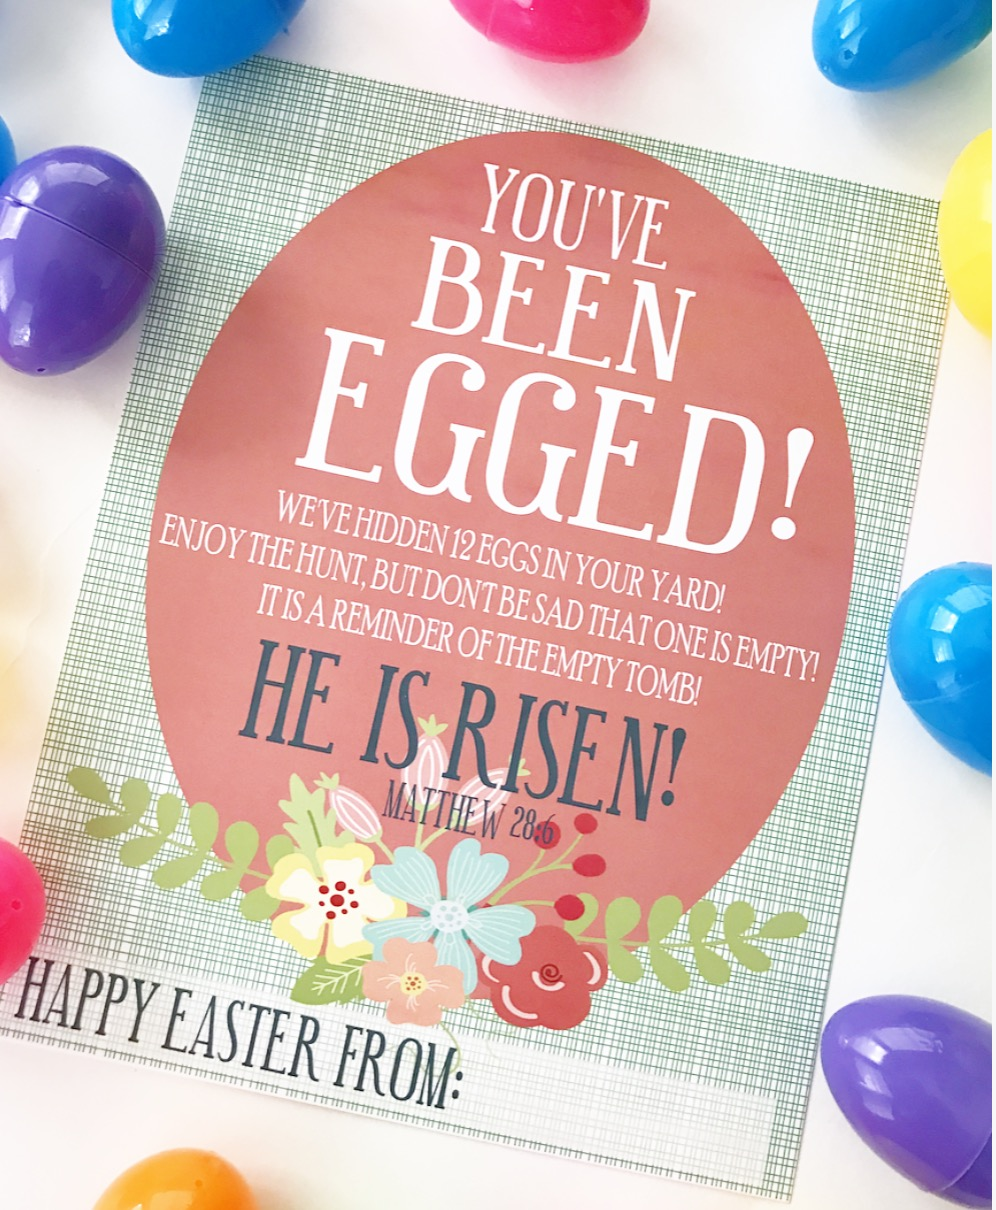 picture regarding You've Been Egged Printable called Youve Been Egged!! - Crisp Collective